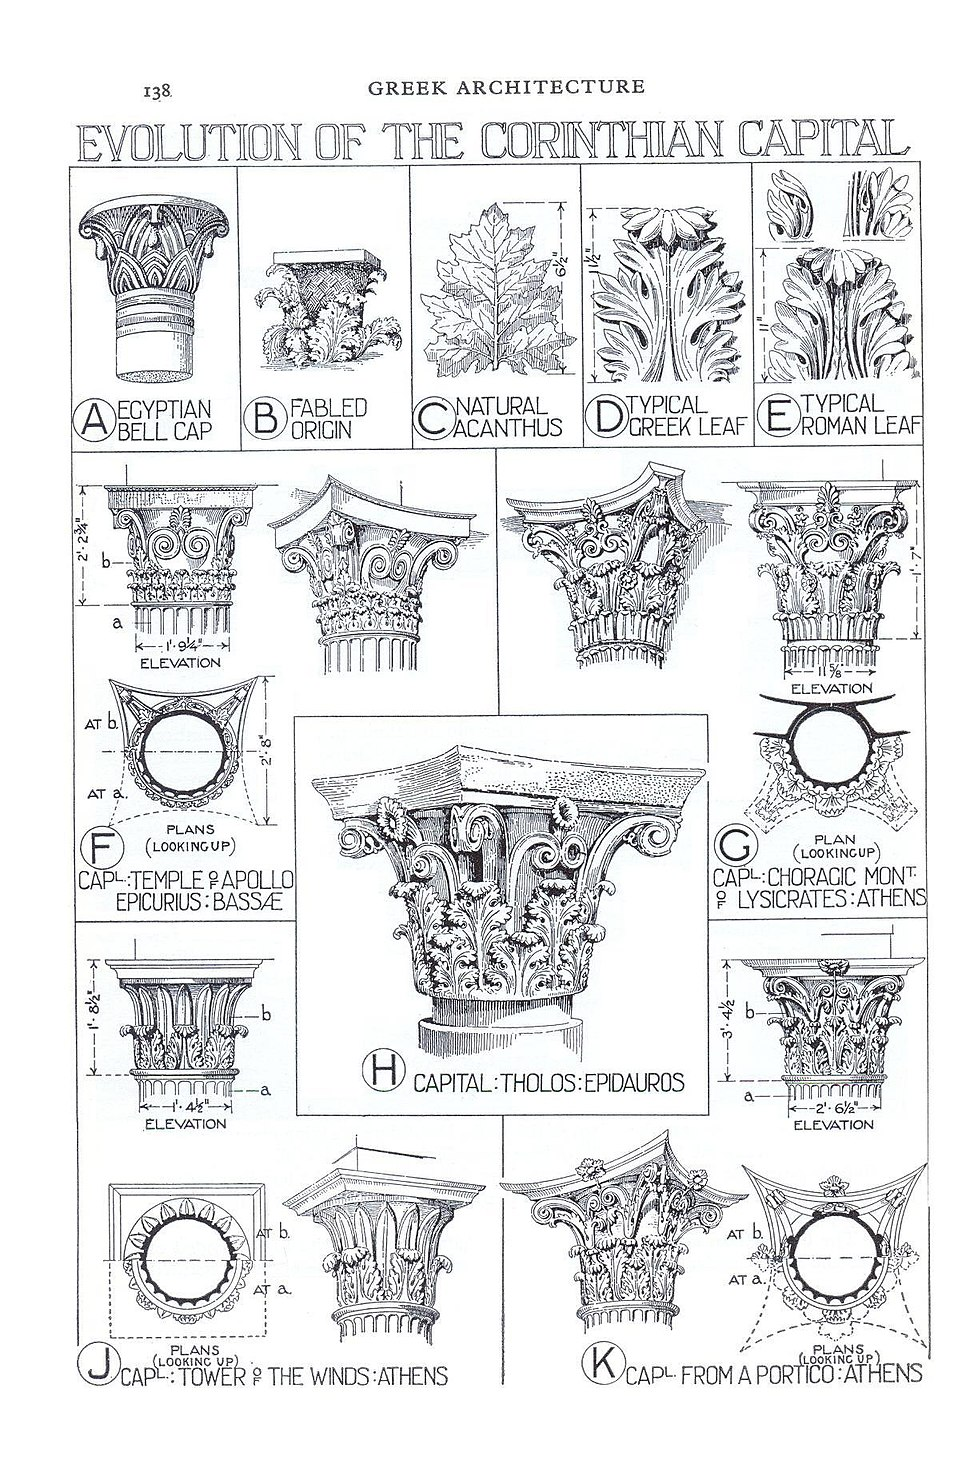 Evolution of the Corinthian Capital 138